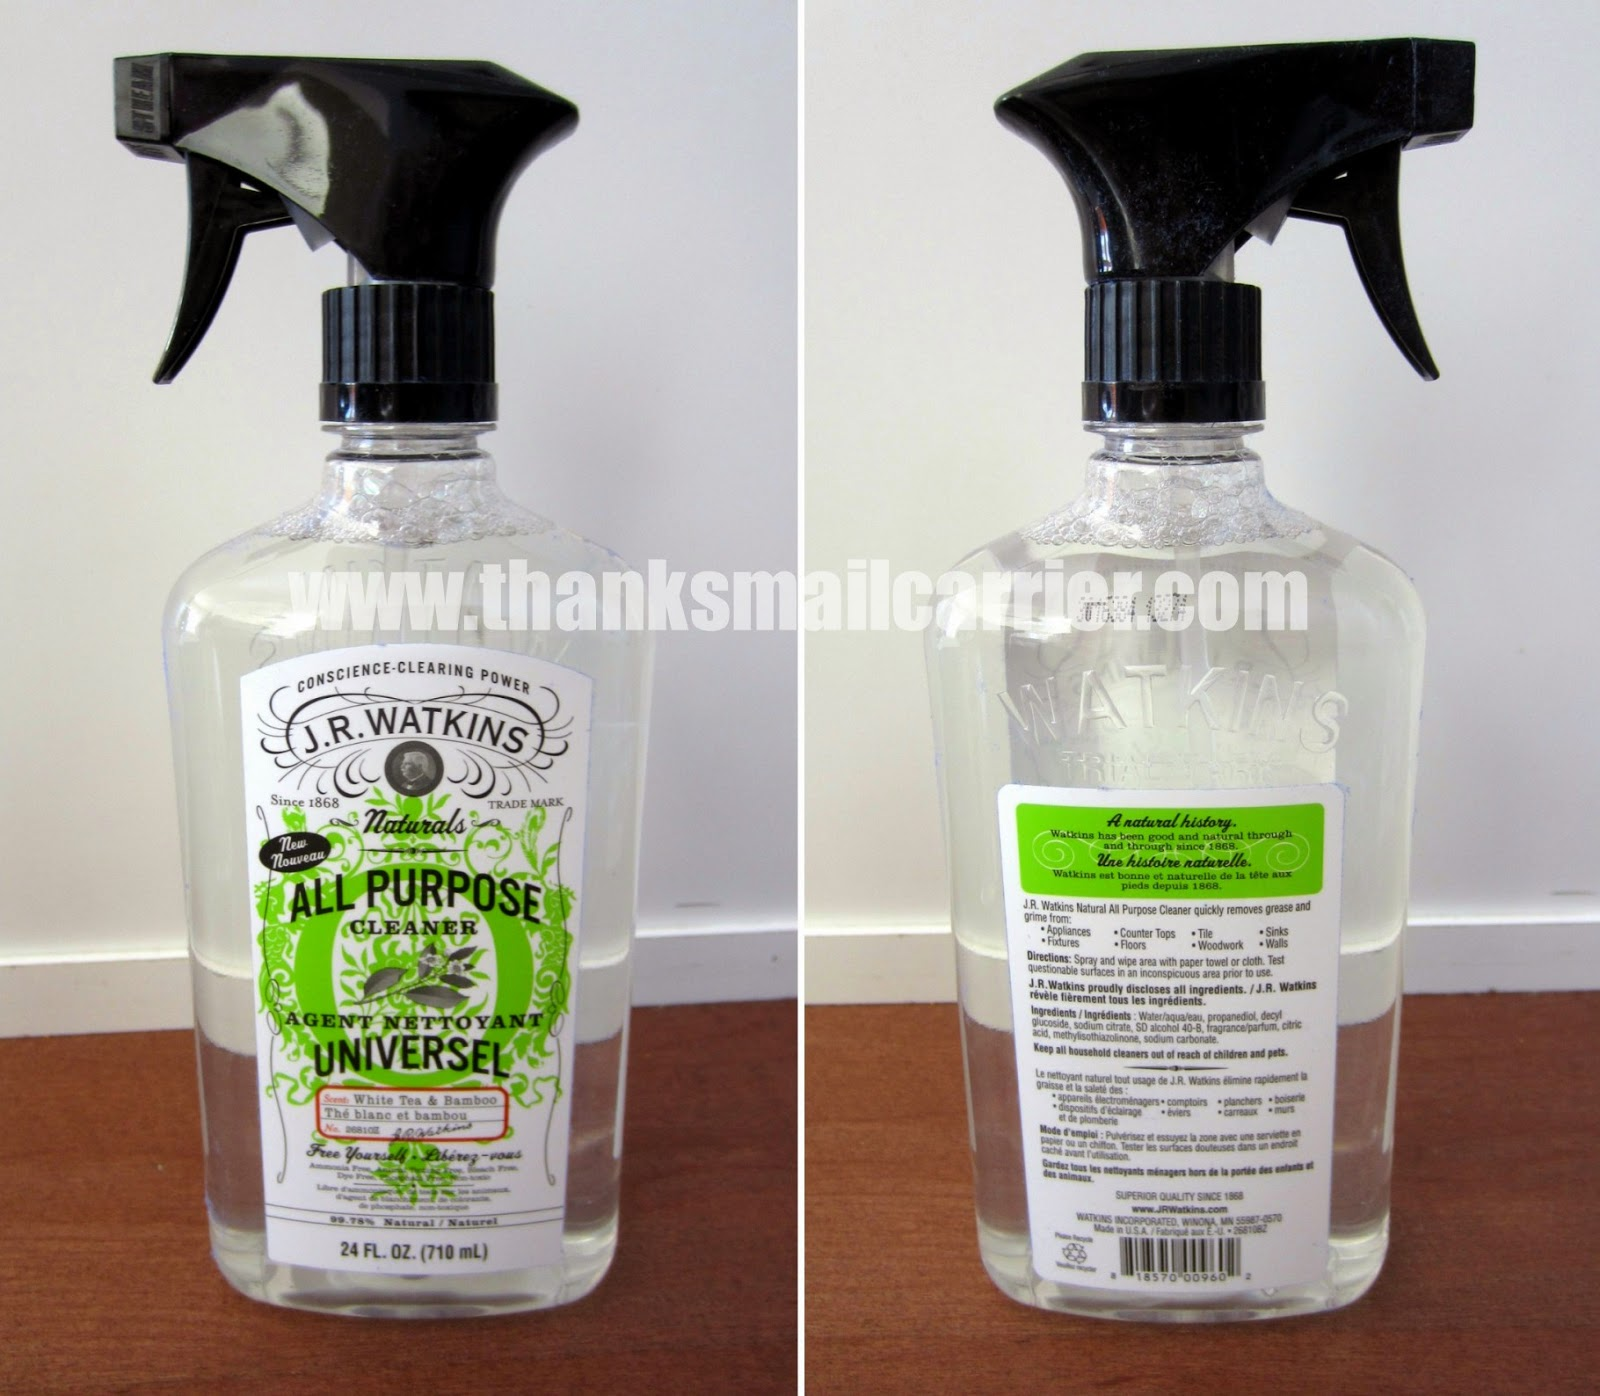 J.R. Watkins natural cleaner